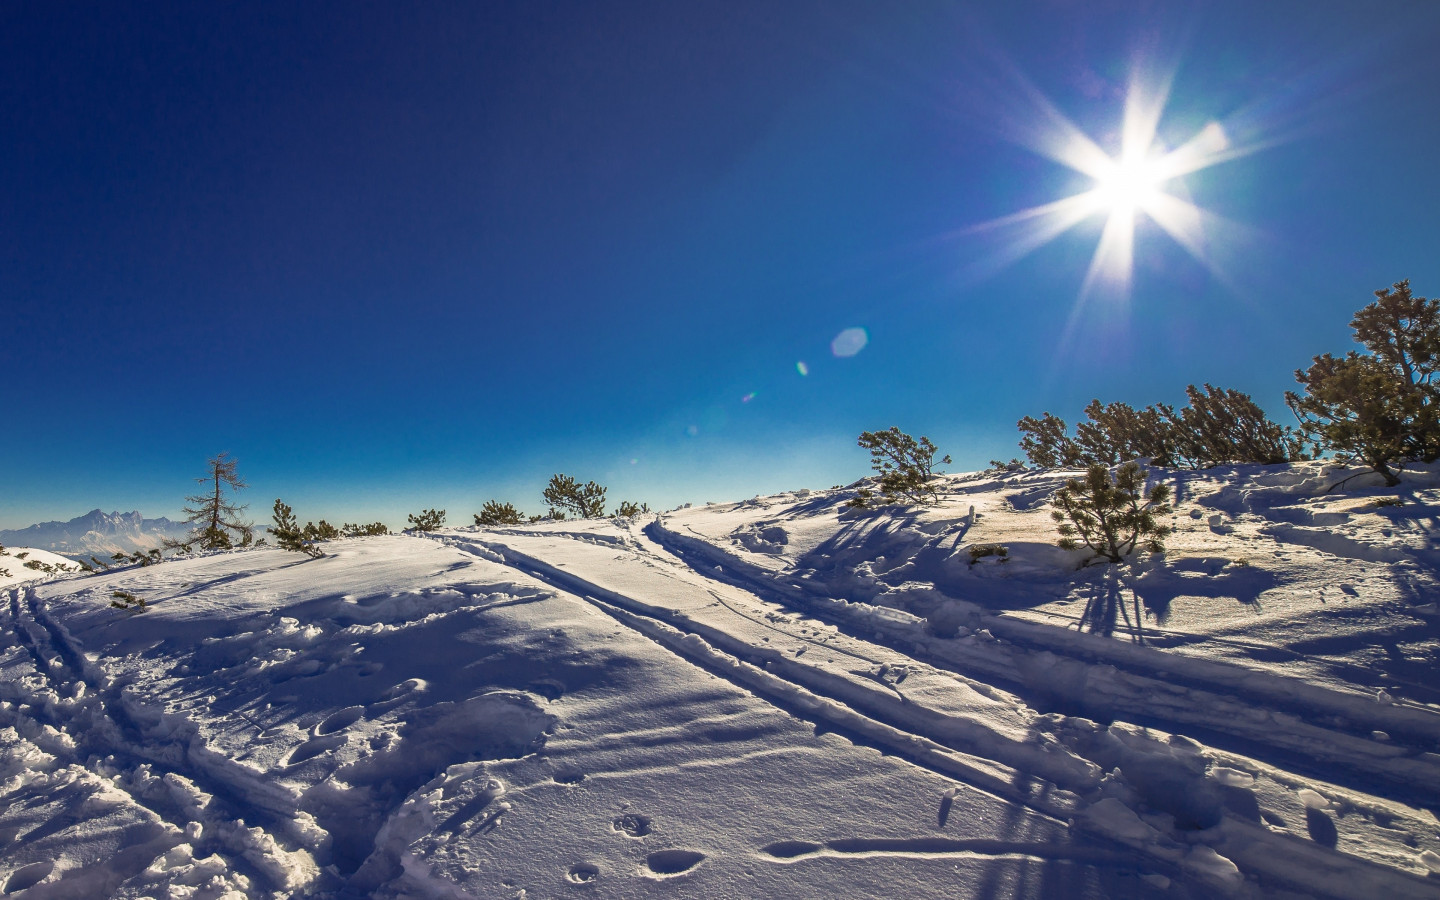 Sunny day in this Winter landscape wallpaper 1440x900